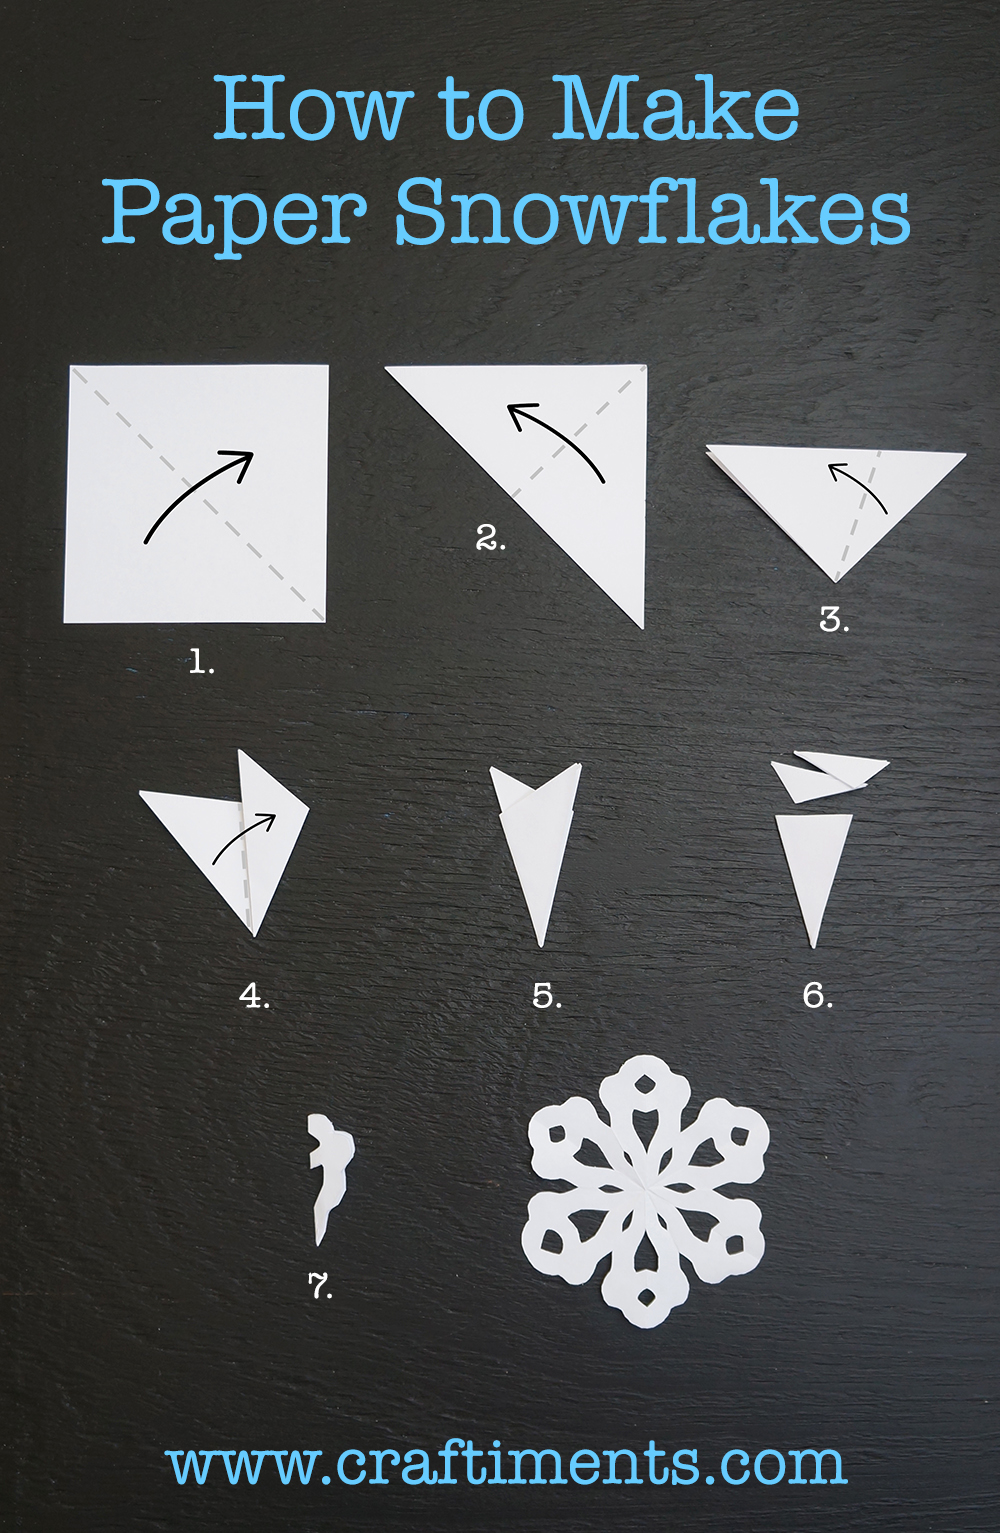 Craftiments: Six Sided Paper Snowflake Tutorial